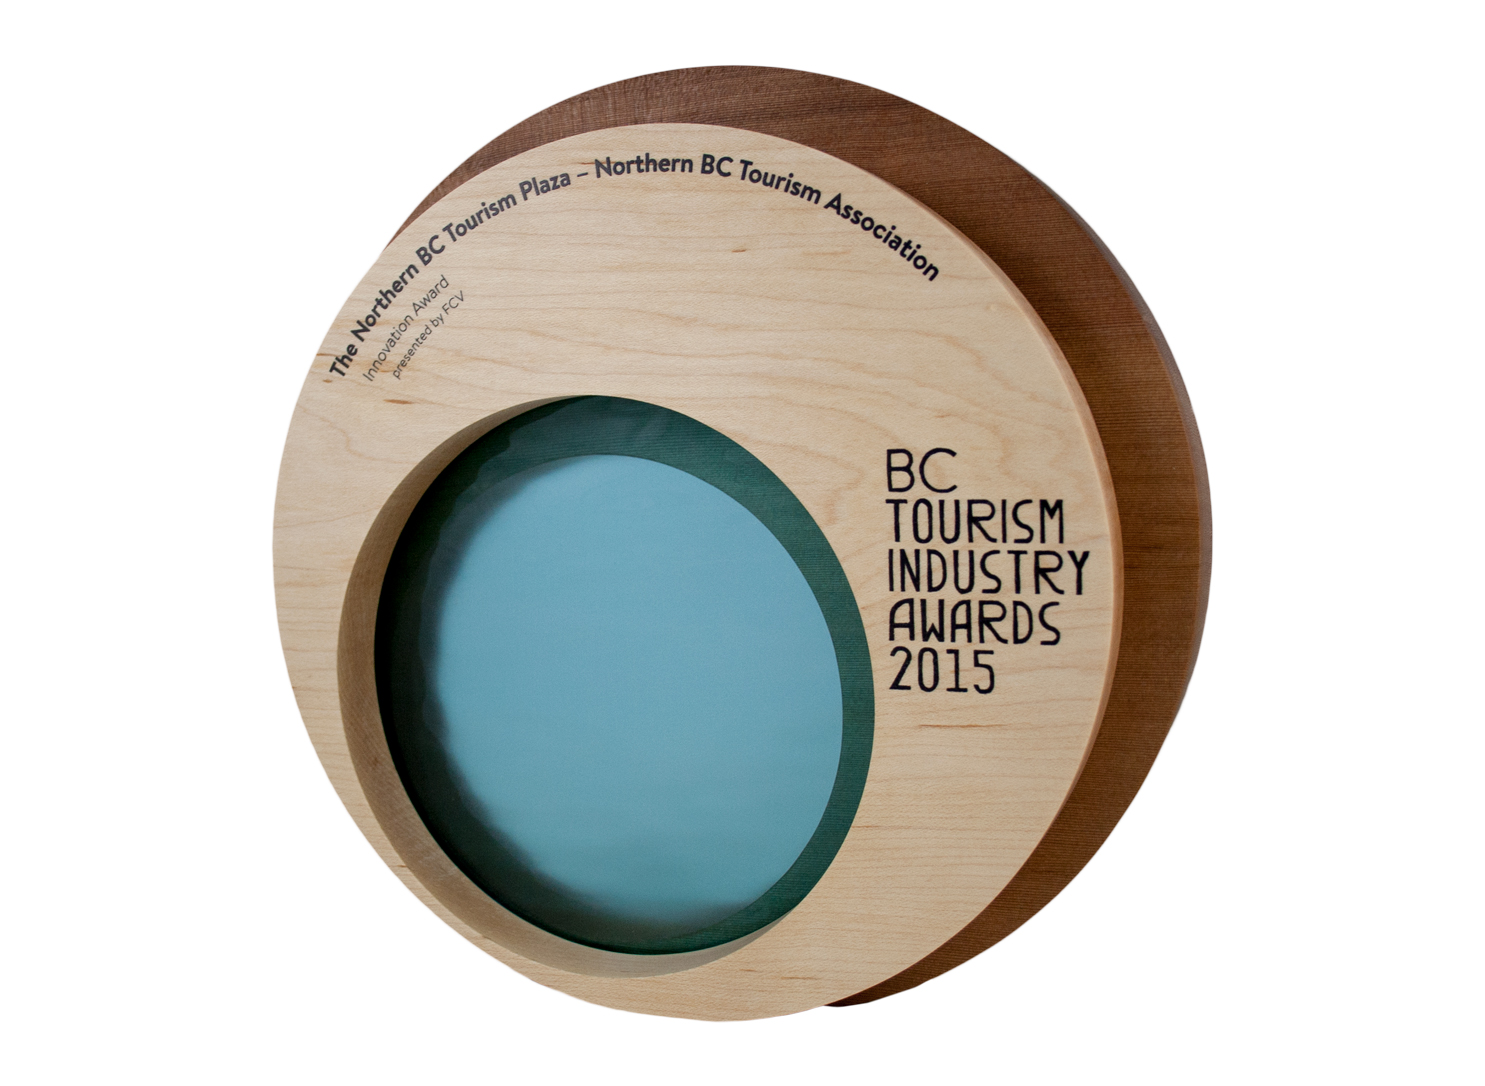 bc-tourism-awards-eco-maple-and-cedar-wood-awards-custom-creative-5.jpg